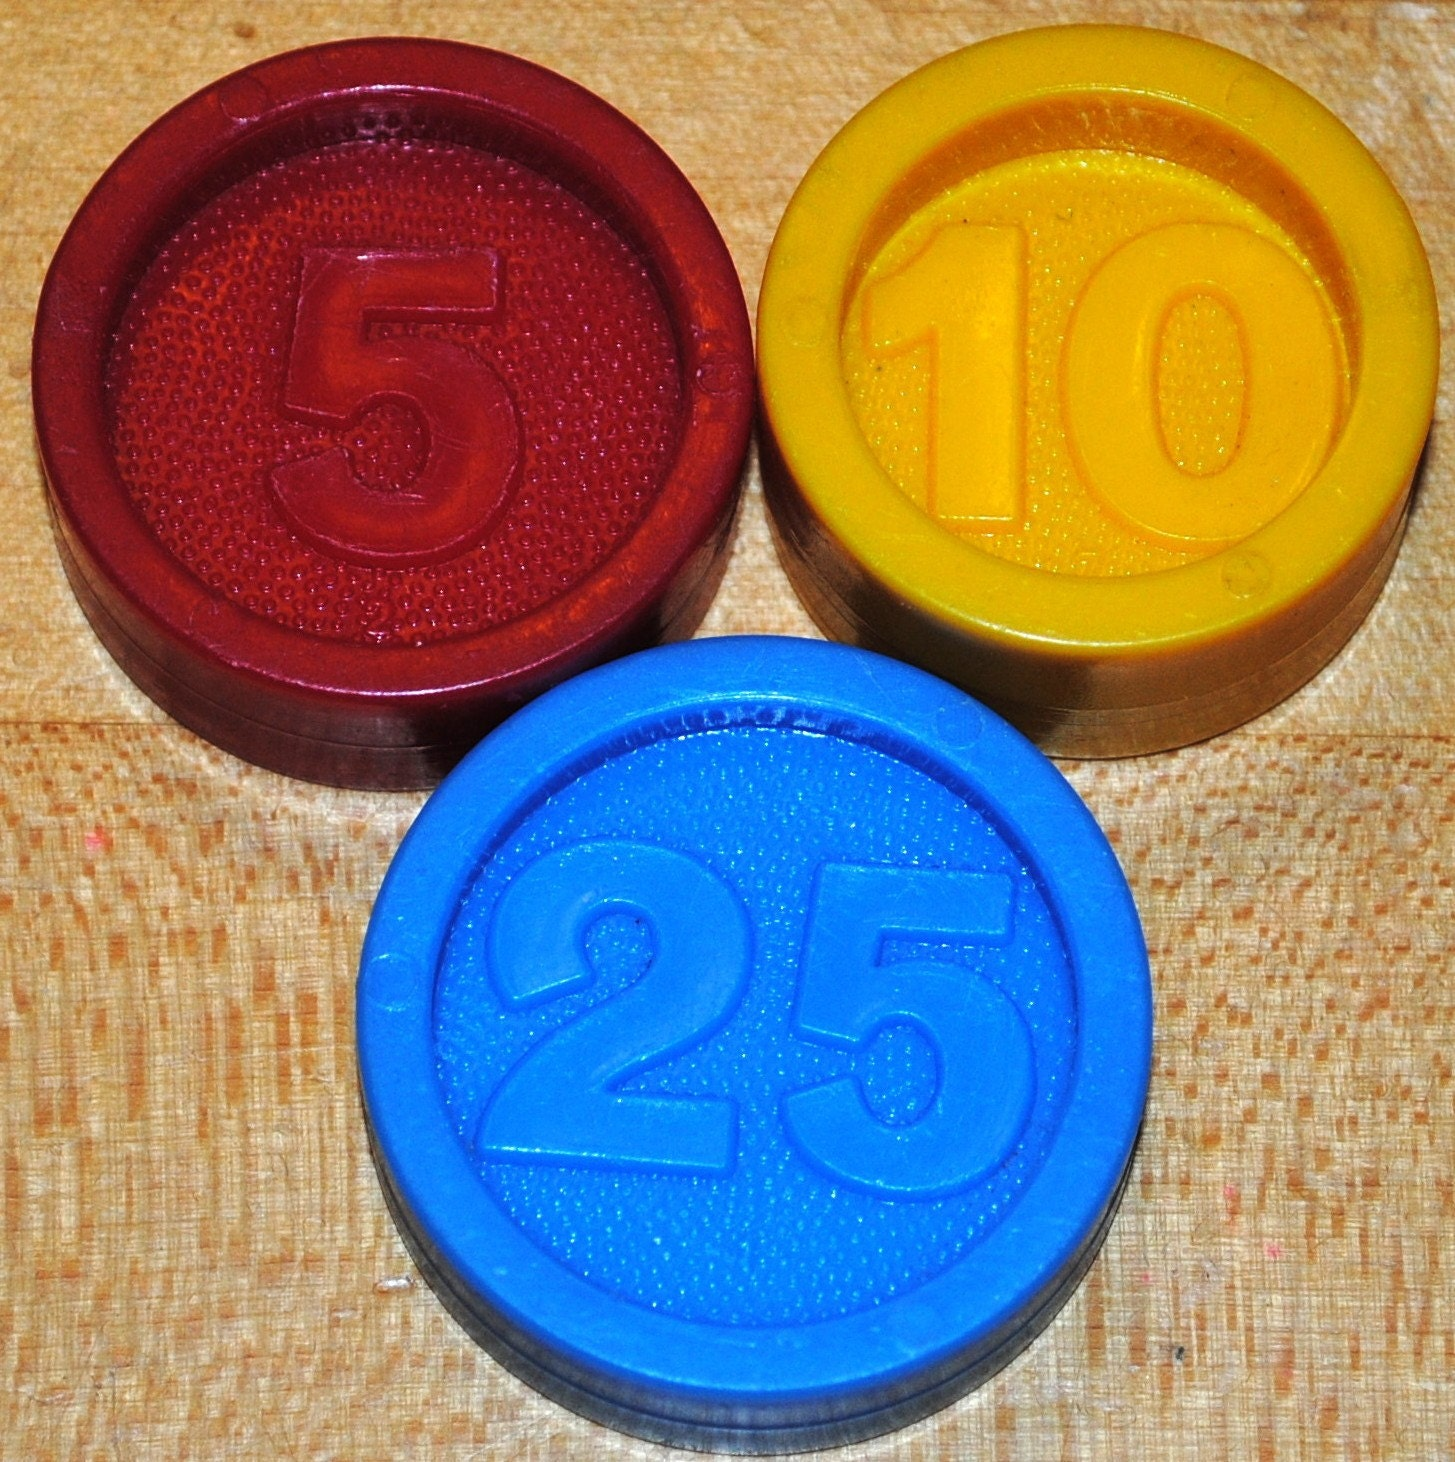 fisher price cash register COINS 926